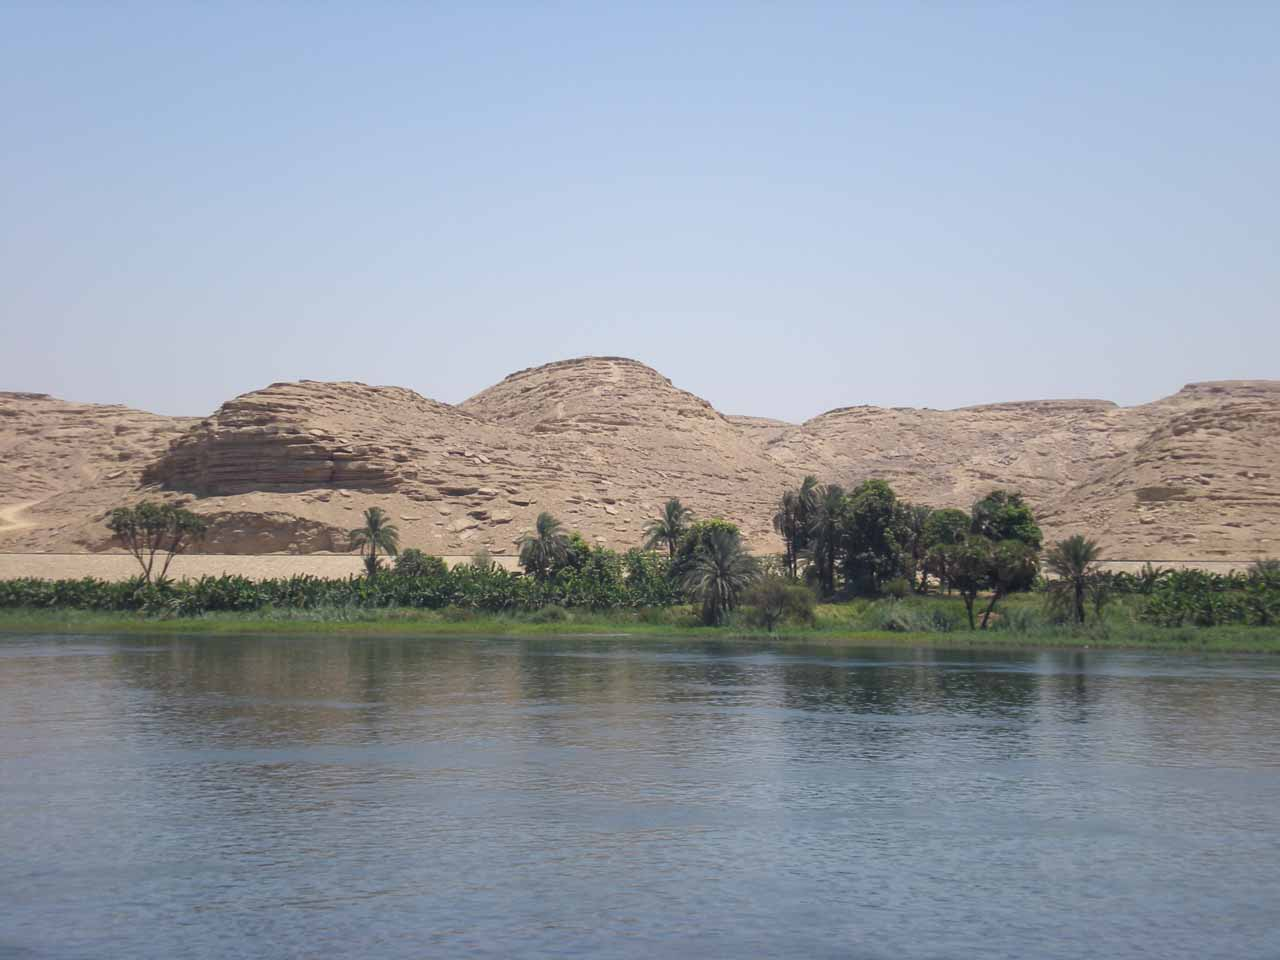 Scenery along the Nile